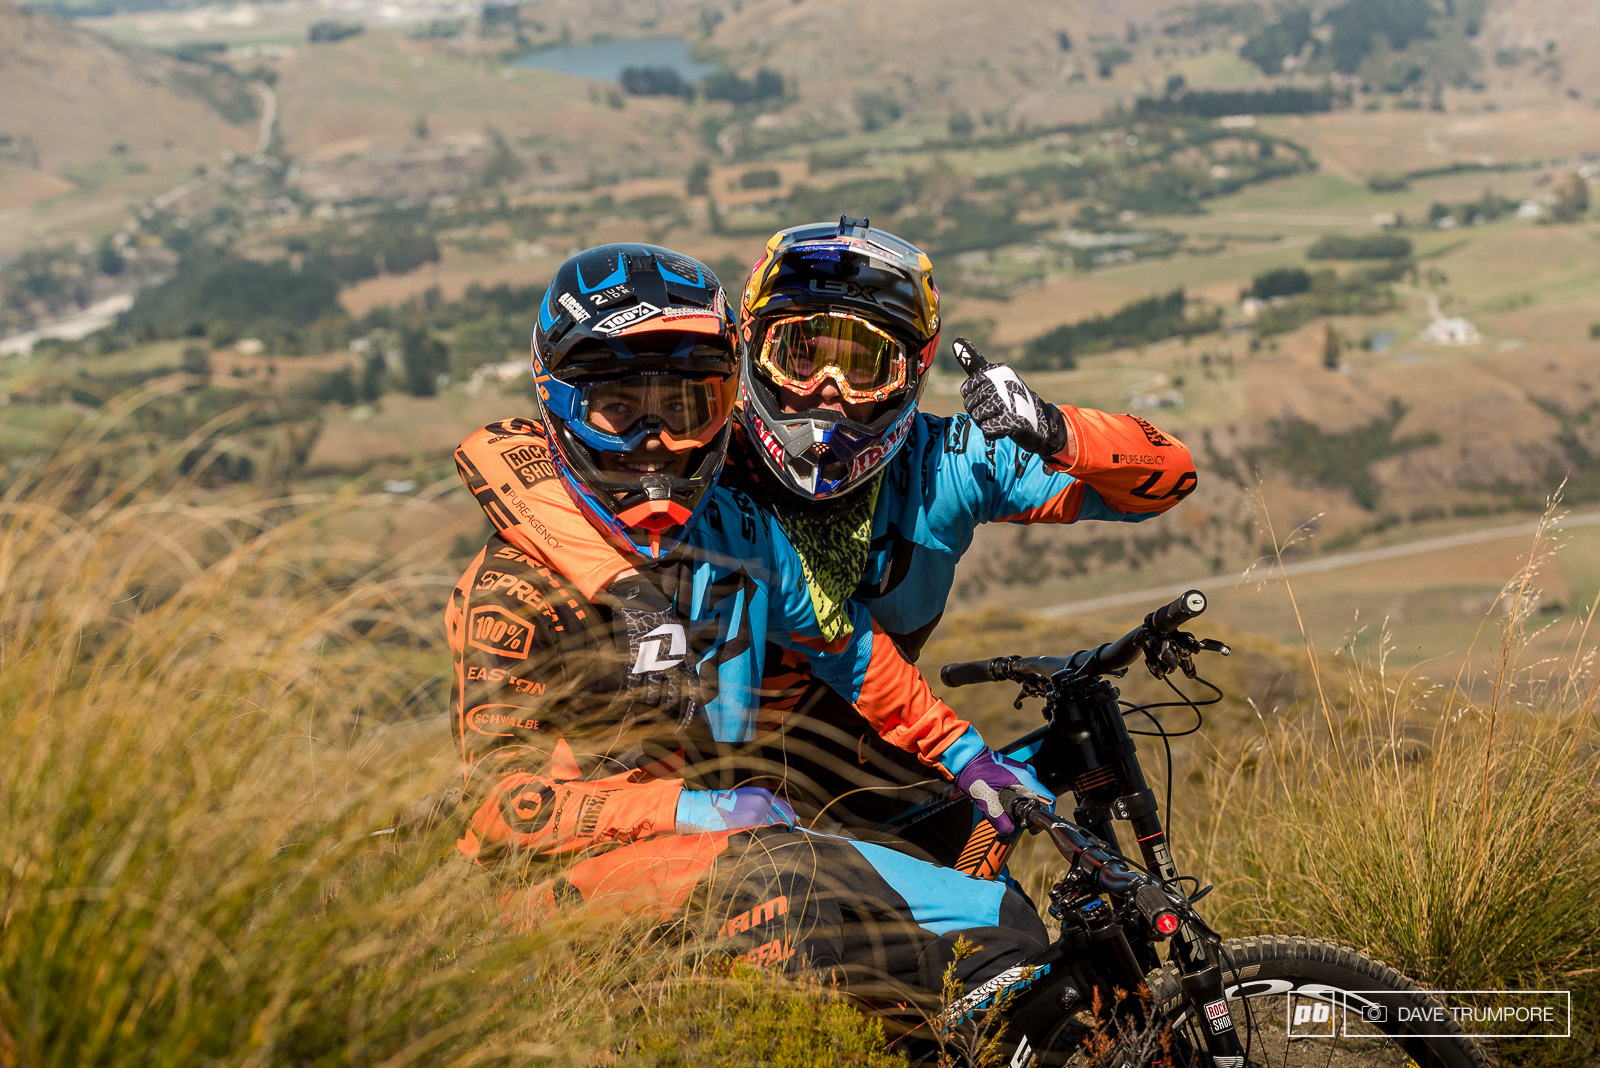 Loic and Finn in NZ riding together for the first time during team camp way back in March.